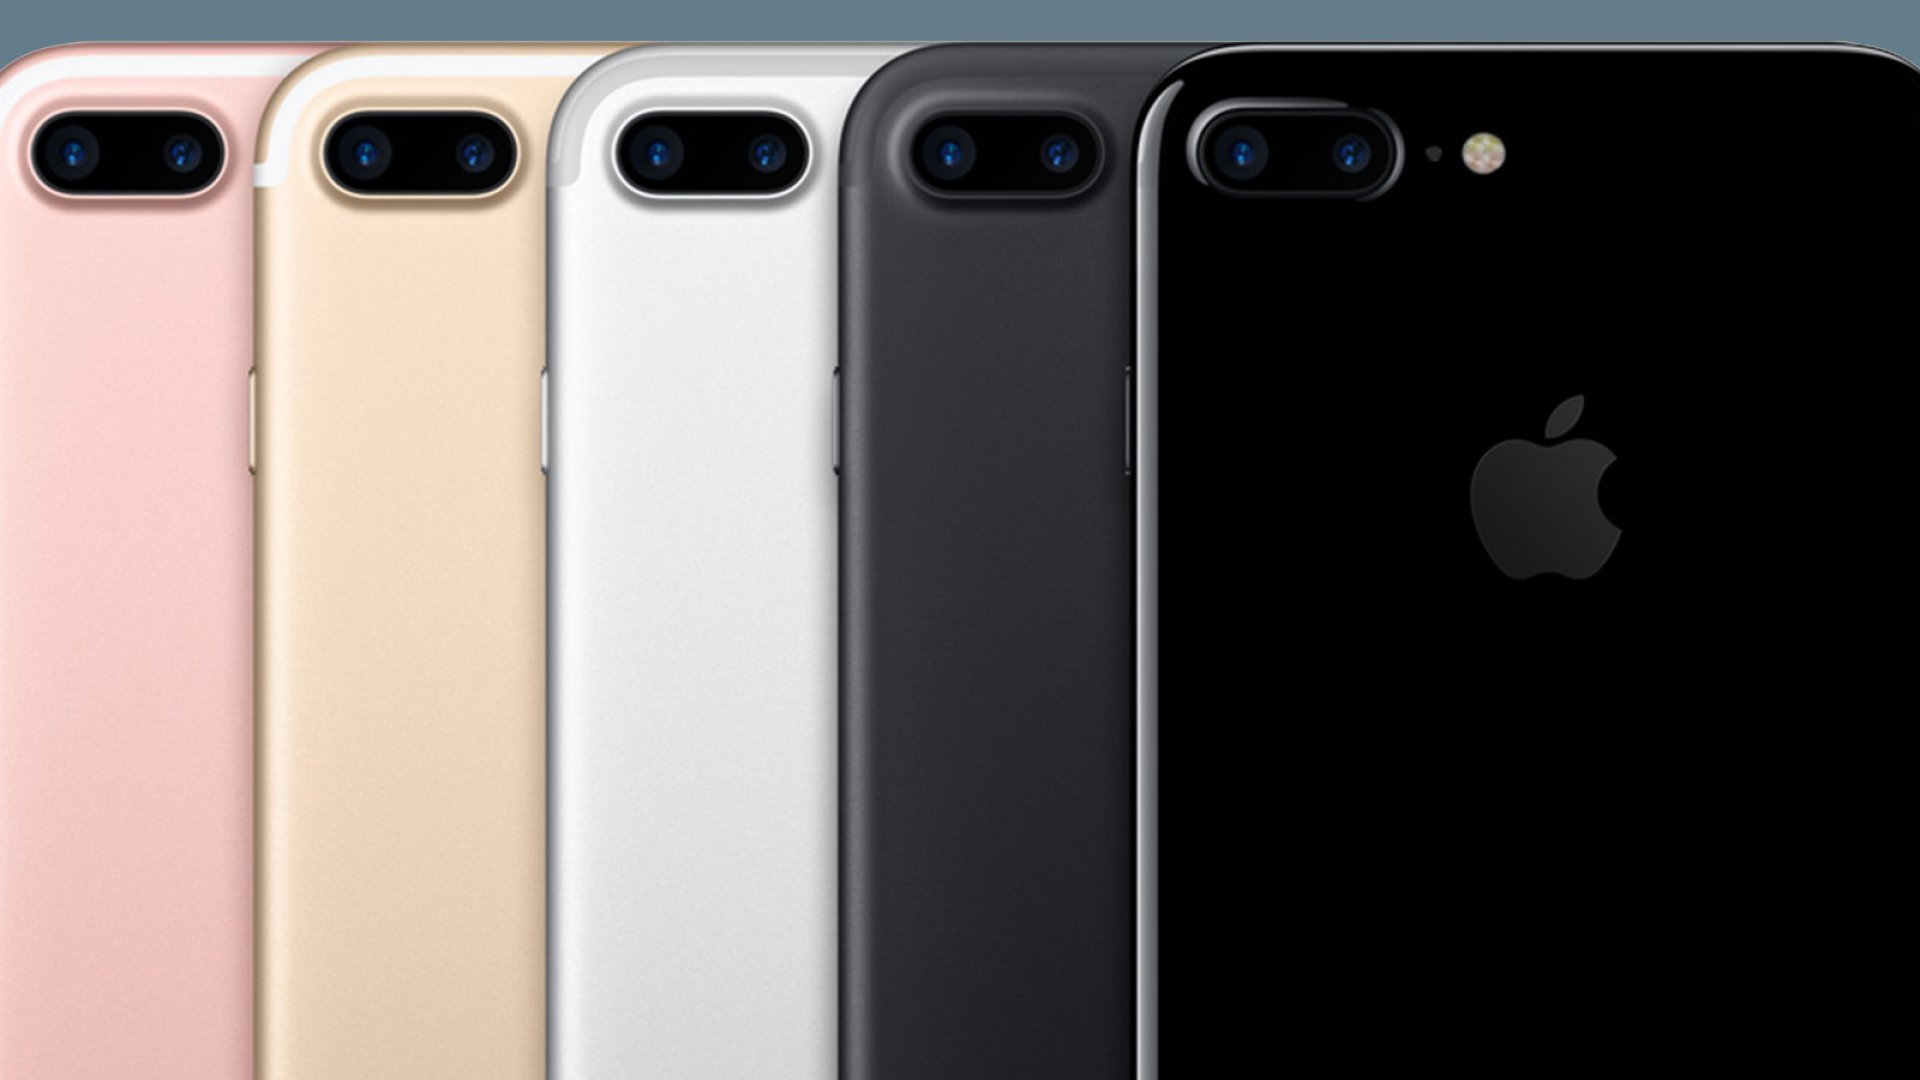 Apple unveiled the iPhone 7 on Wednesday at an event in San Francisco. Pre-orders for the device kick off on Sept. 9.